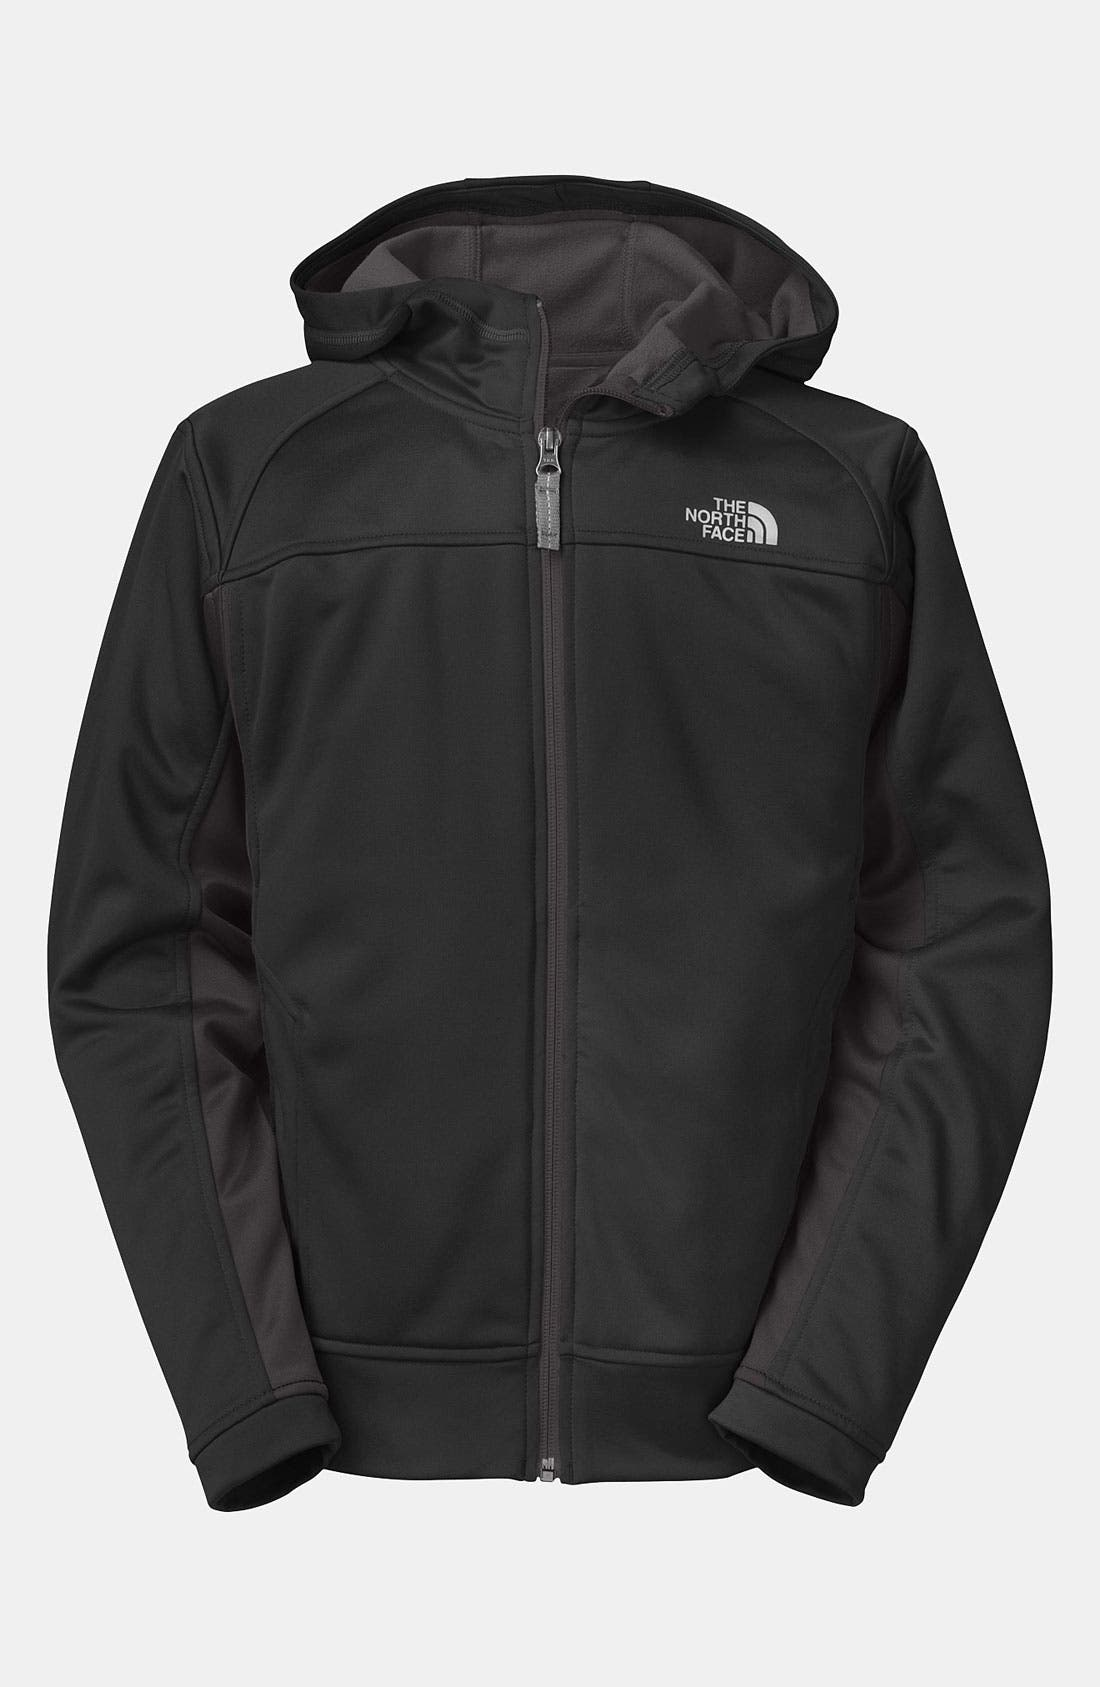 Alternate Image 1 Selected - The North Face 'Surgent' Jacket (Little Boys & Big Boys)